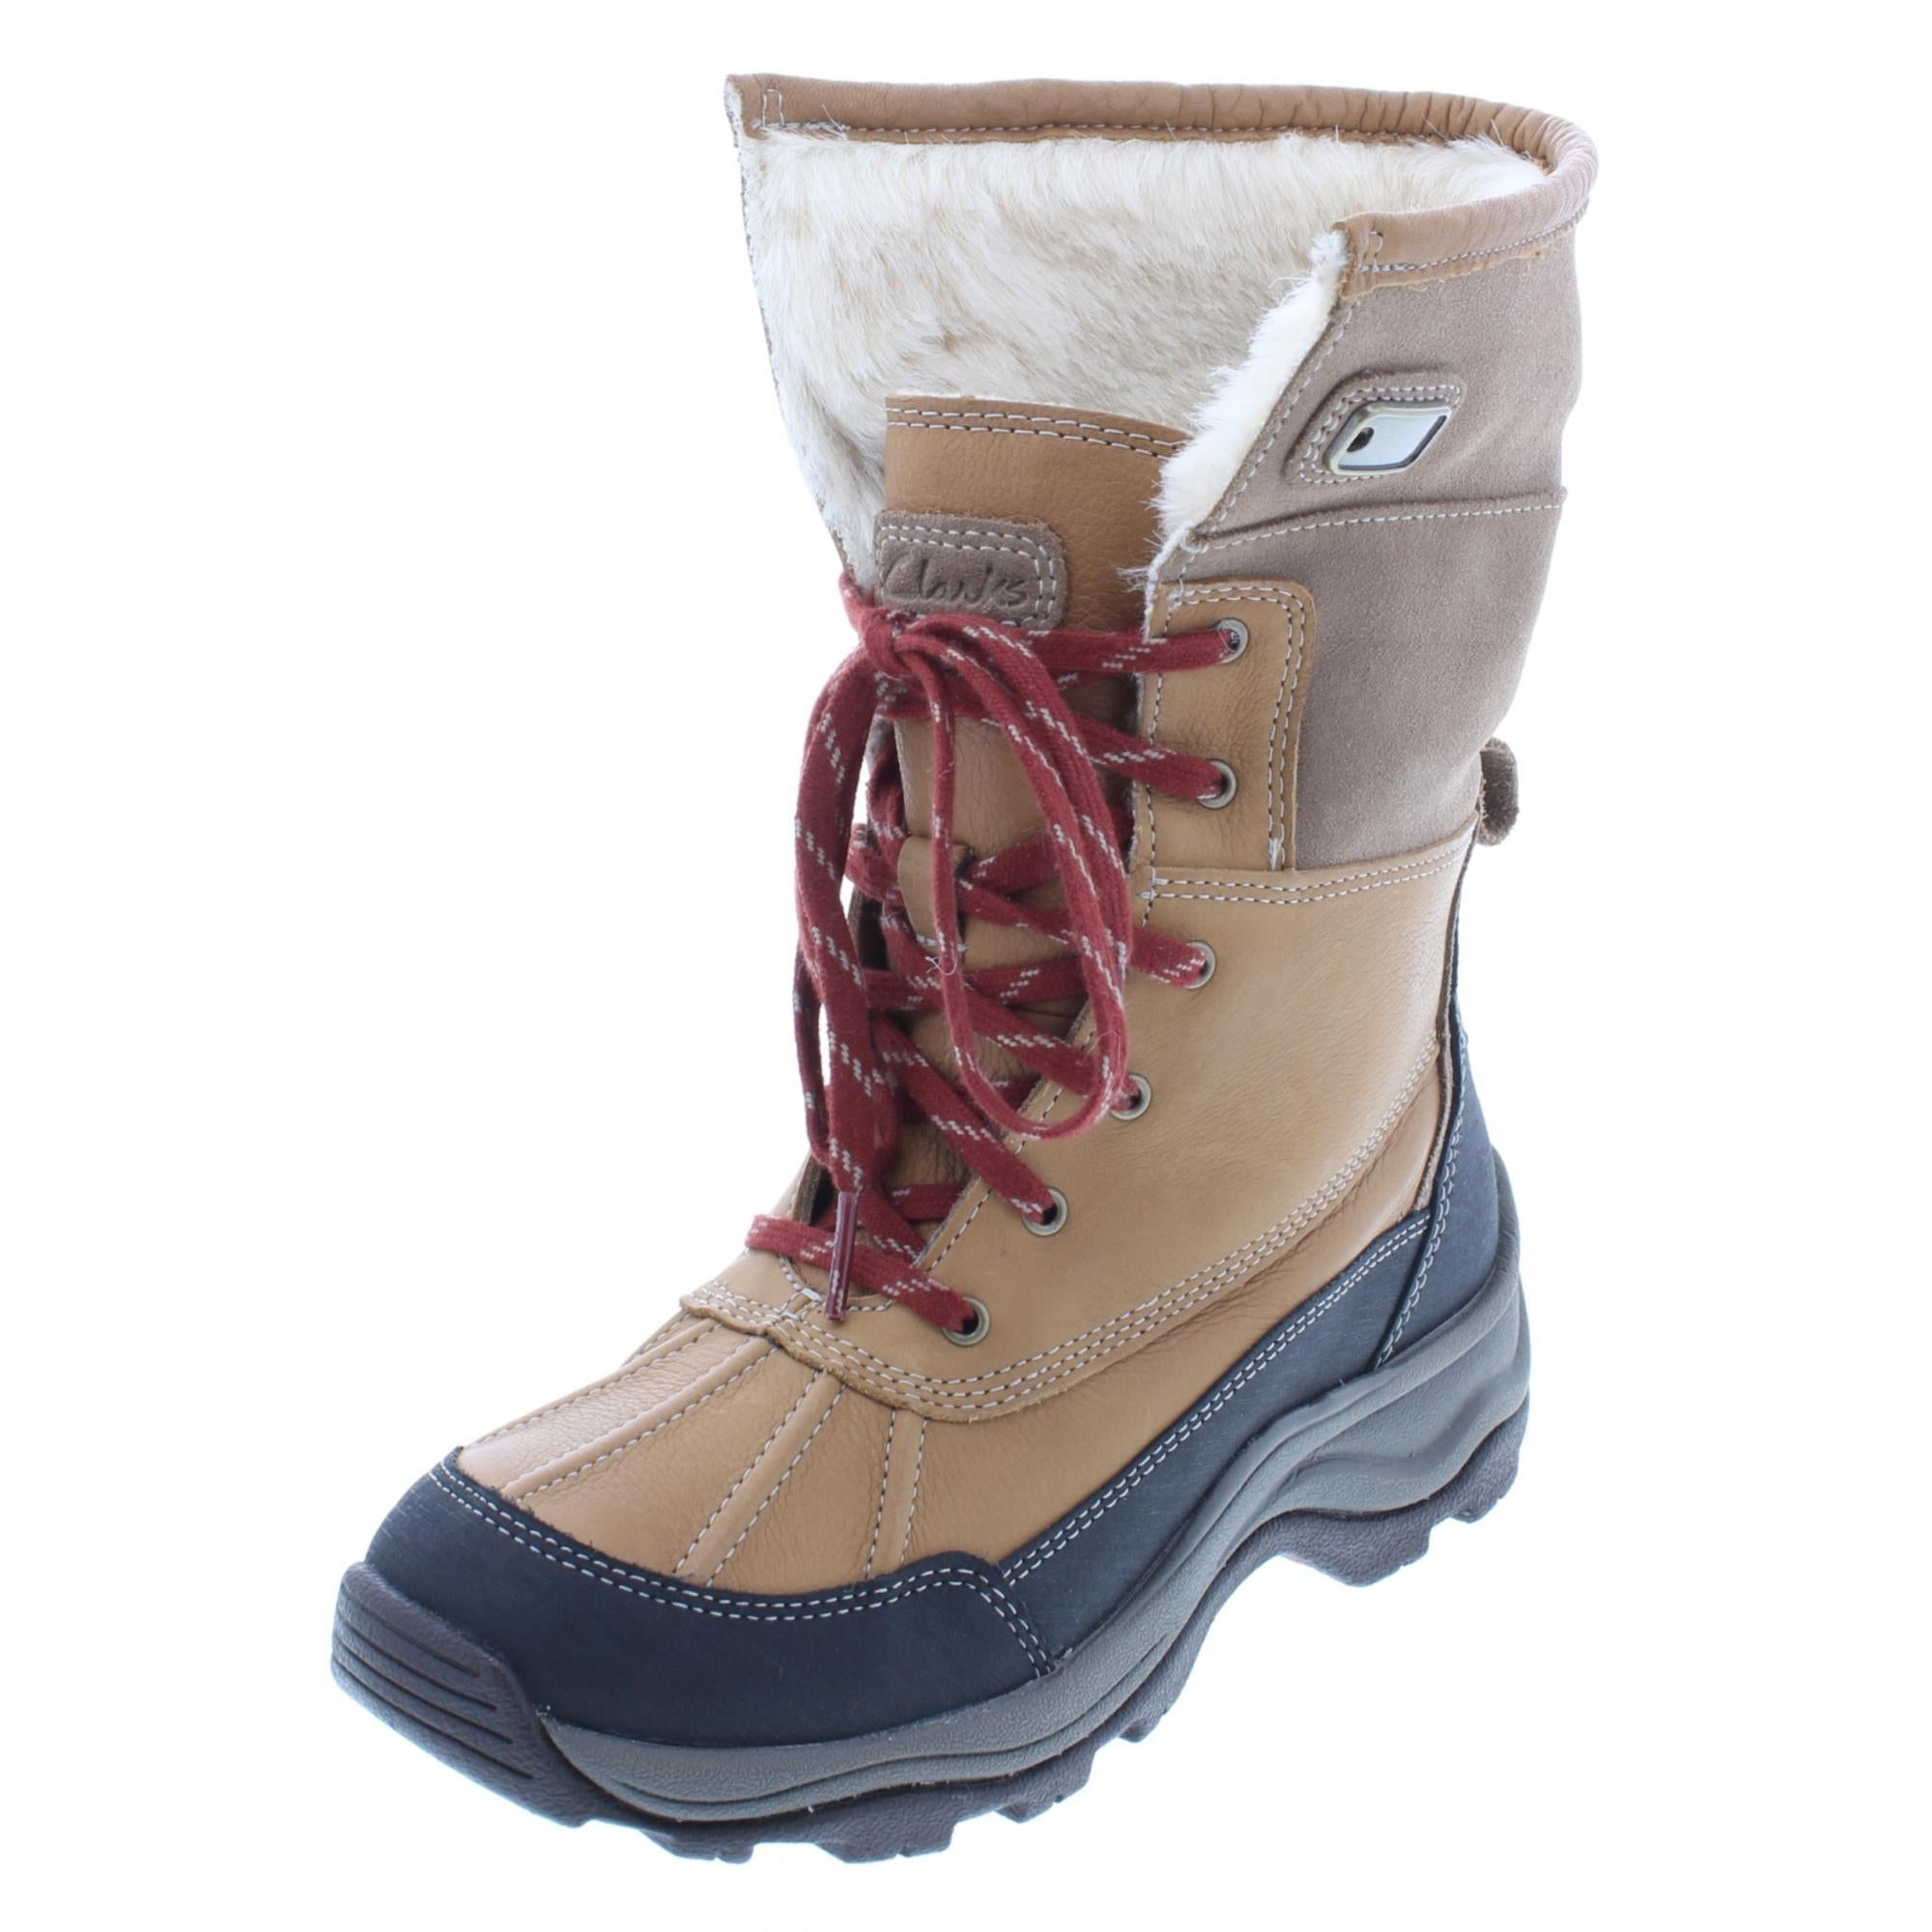 clarks winter boots womens off 59